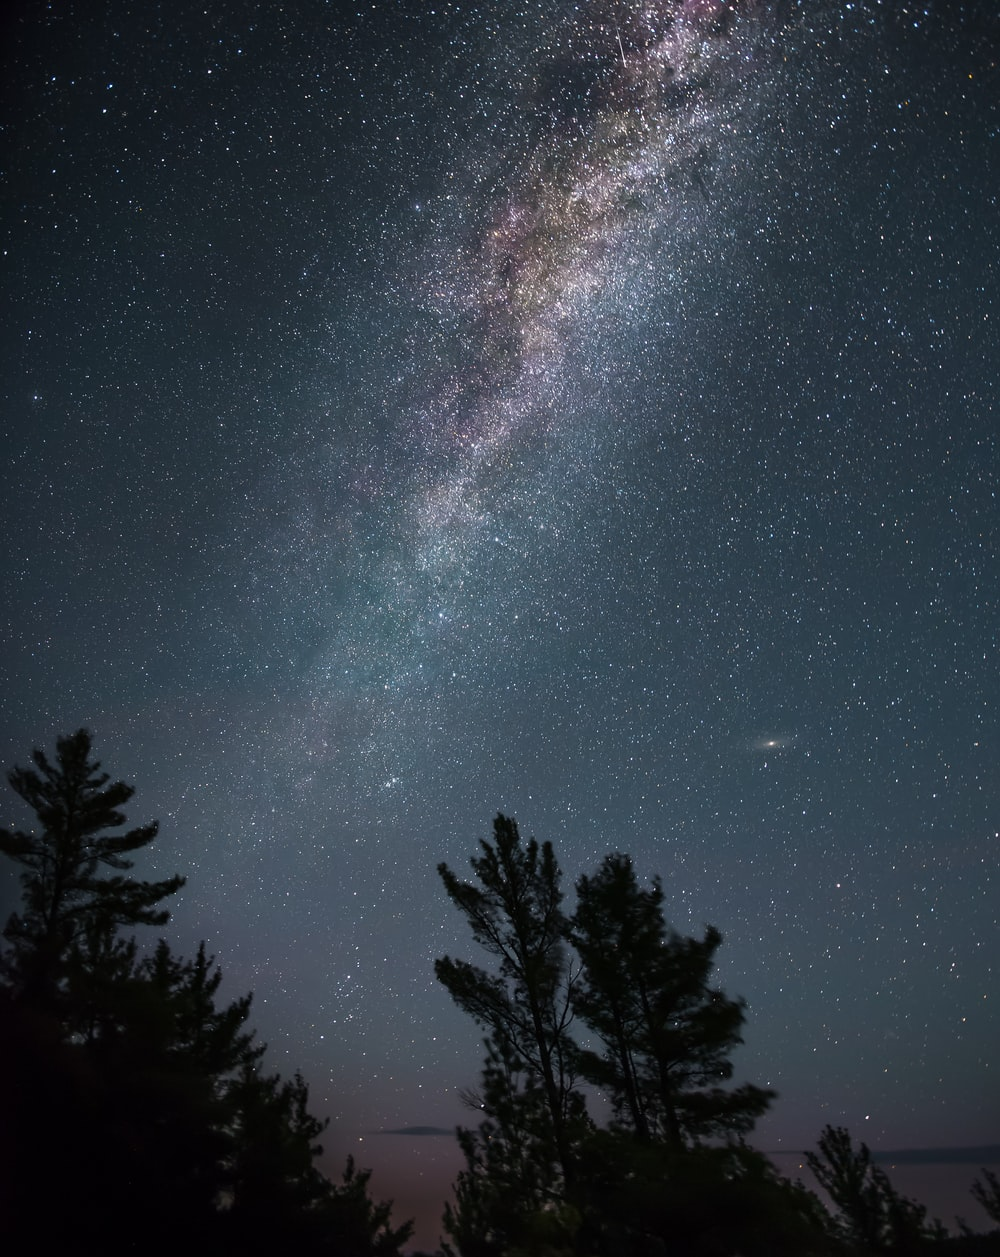 silhouette of tall trees under white star lot during night time